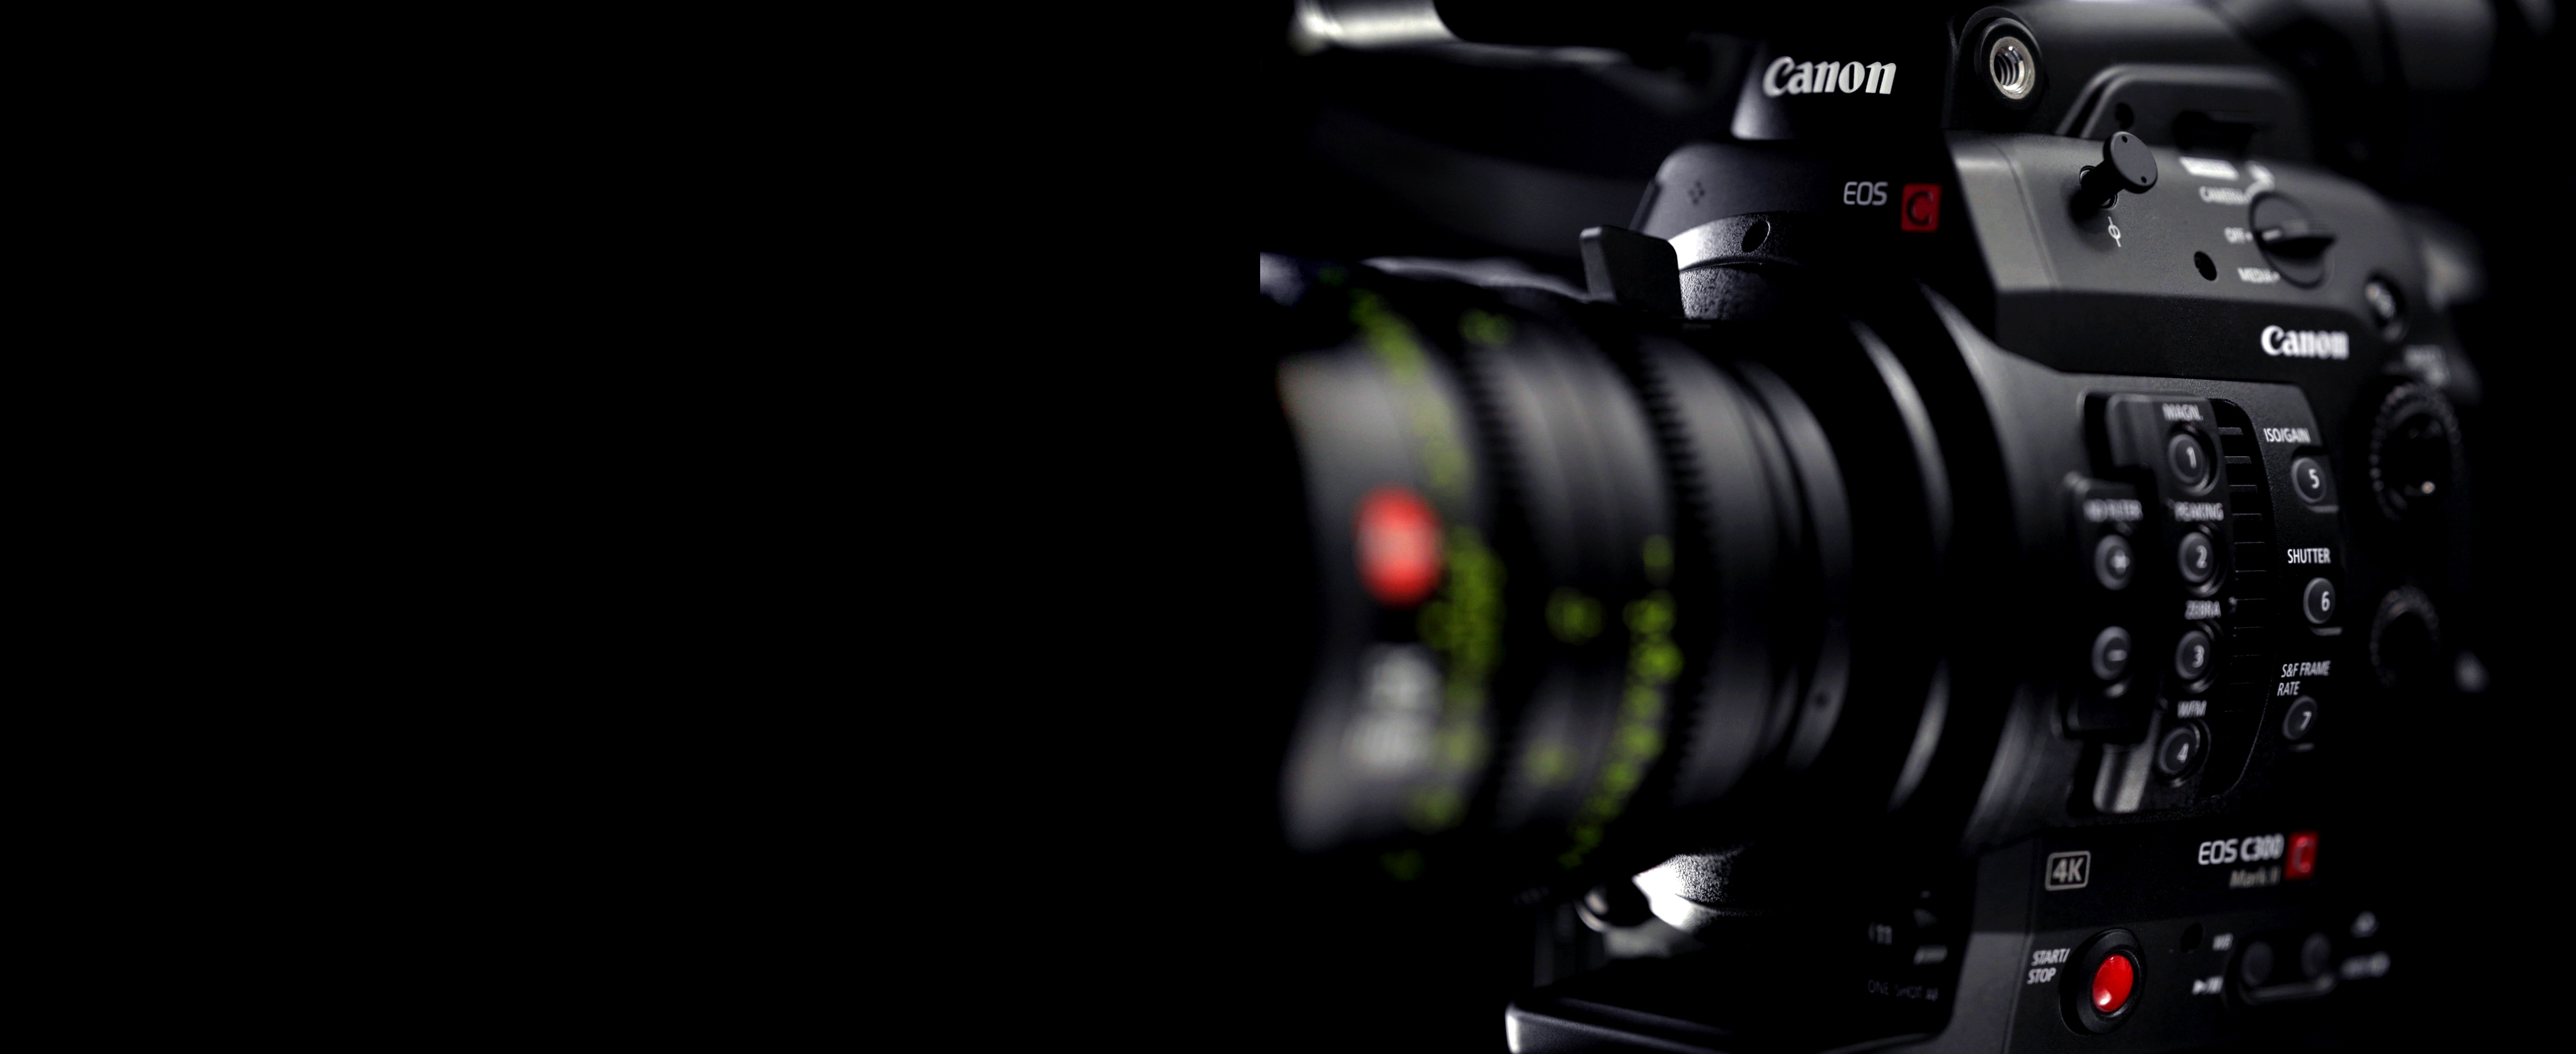 Canon EOS C300 Mk II PL | chater camera